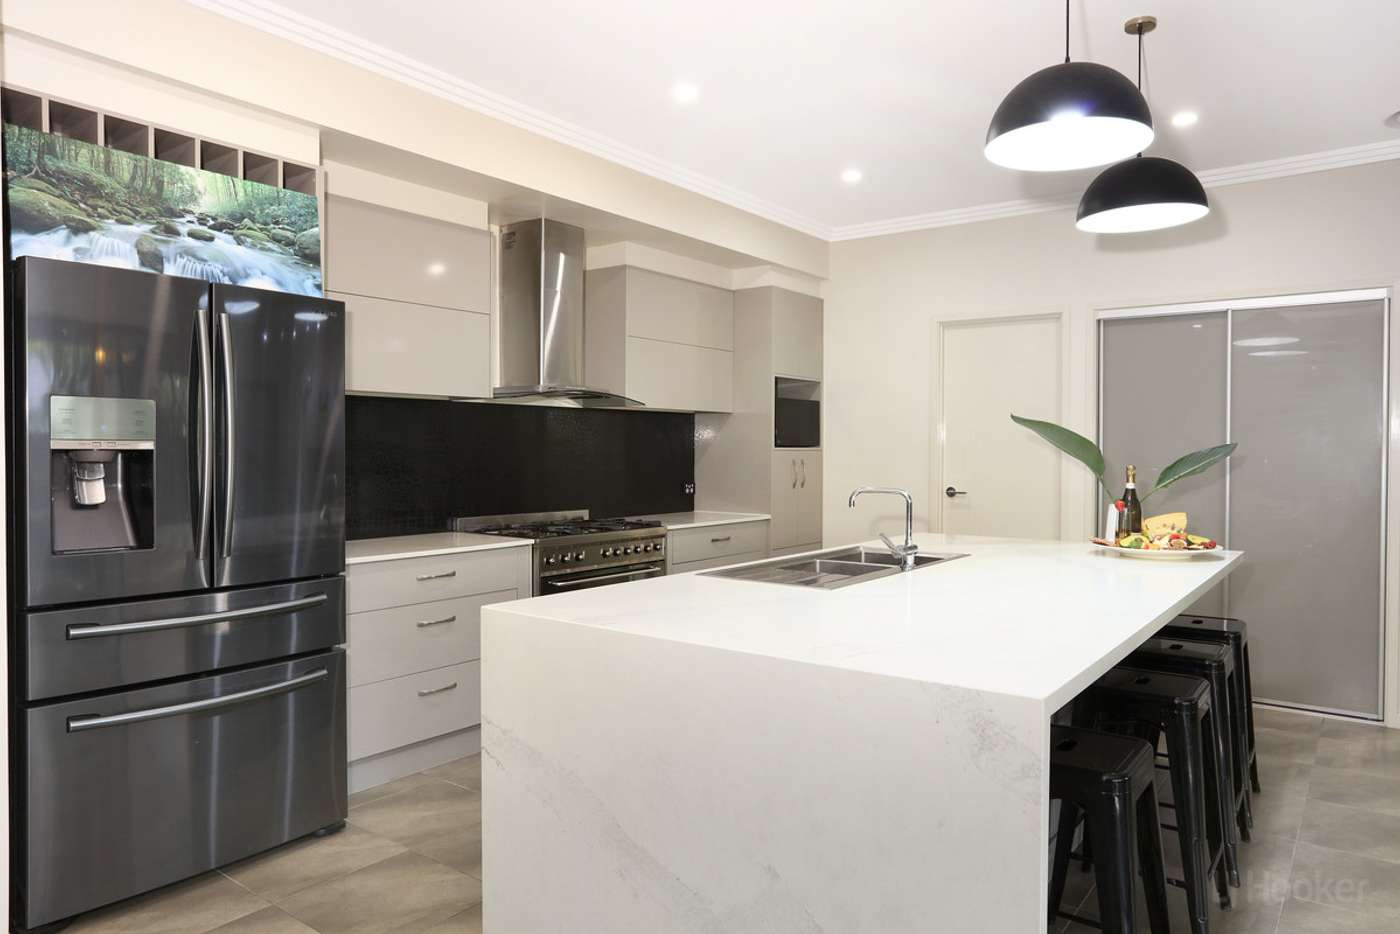 Main view of Homely house listing, 15 Leeside Place, Hope Island QLD 4212